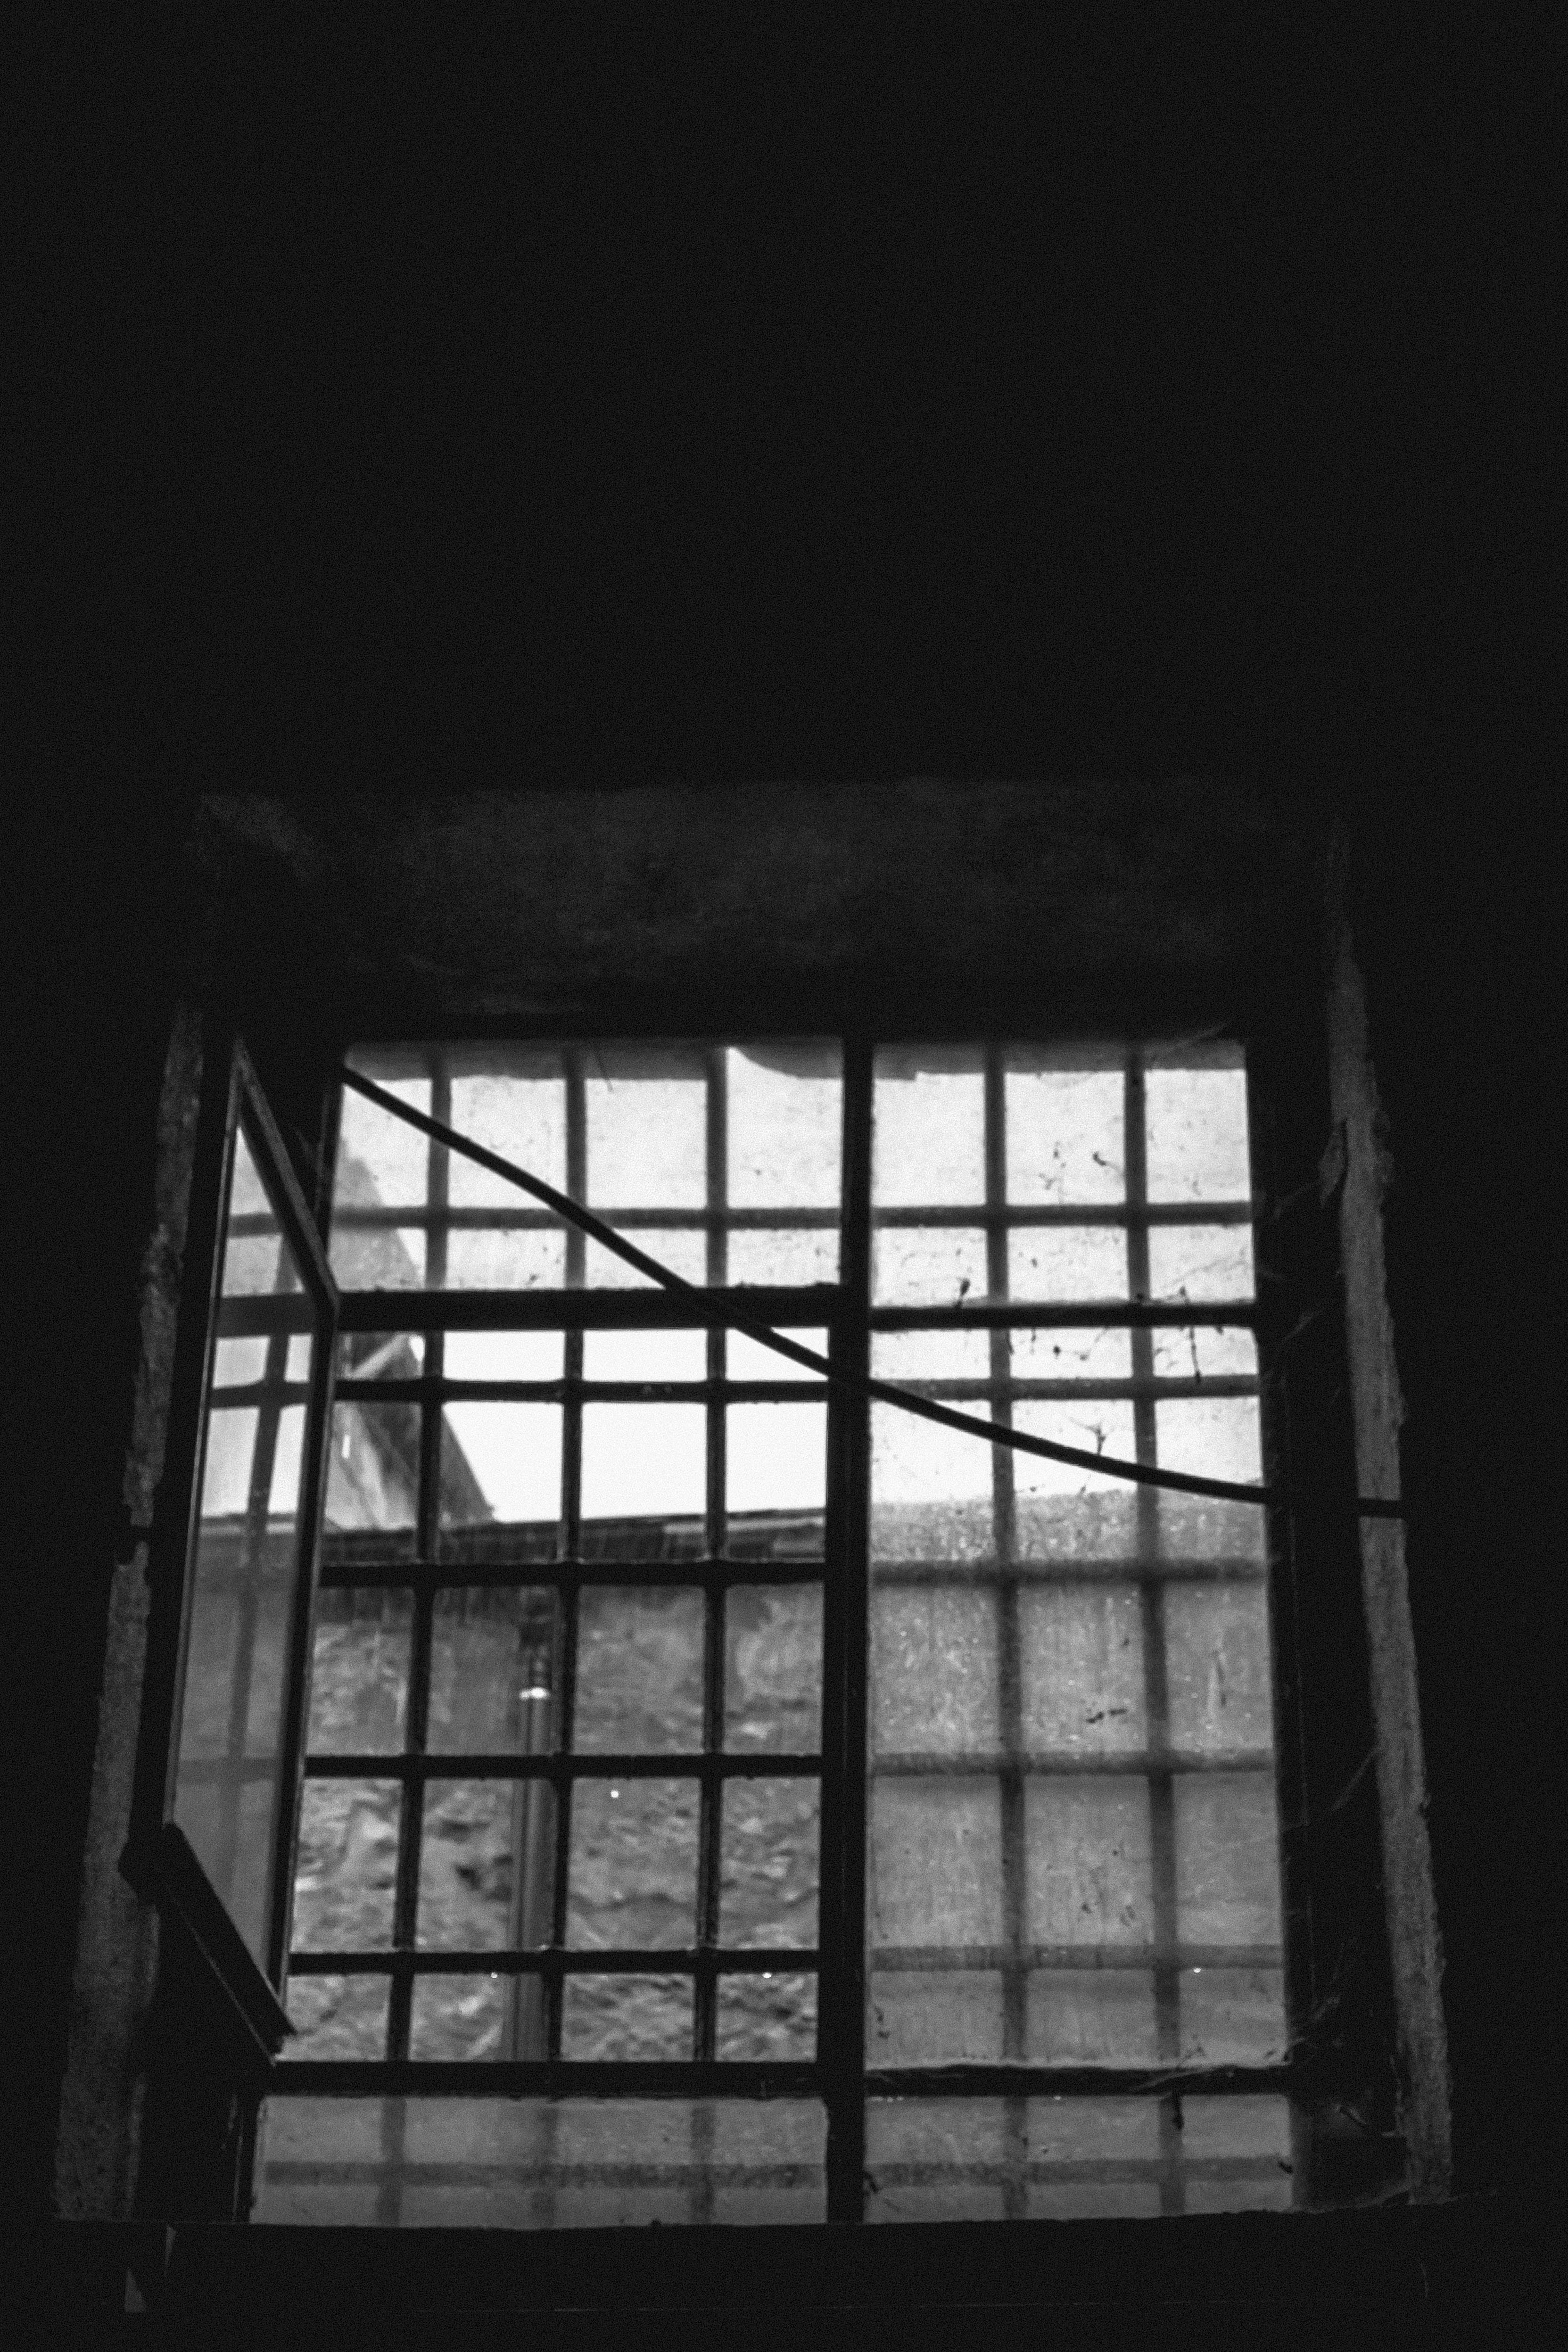 Free stock photo of warehouse, window, bars, looking out